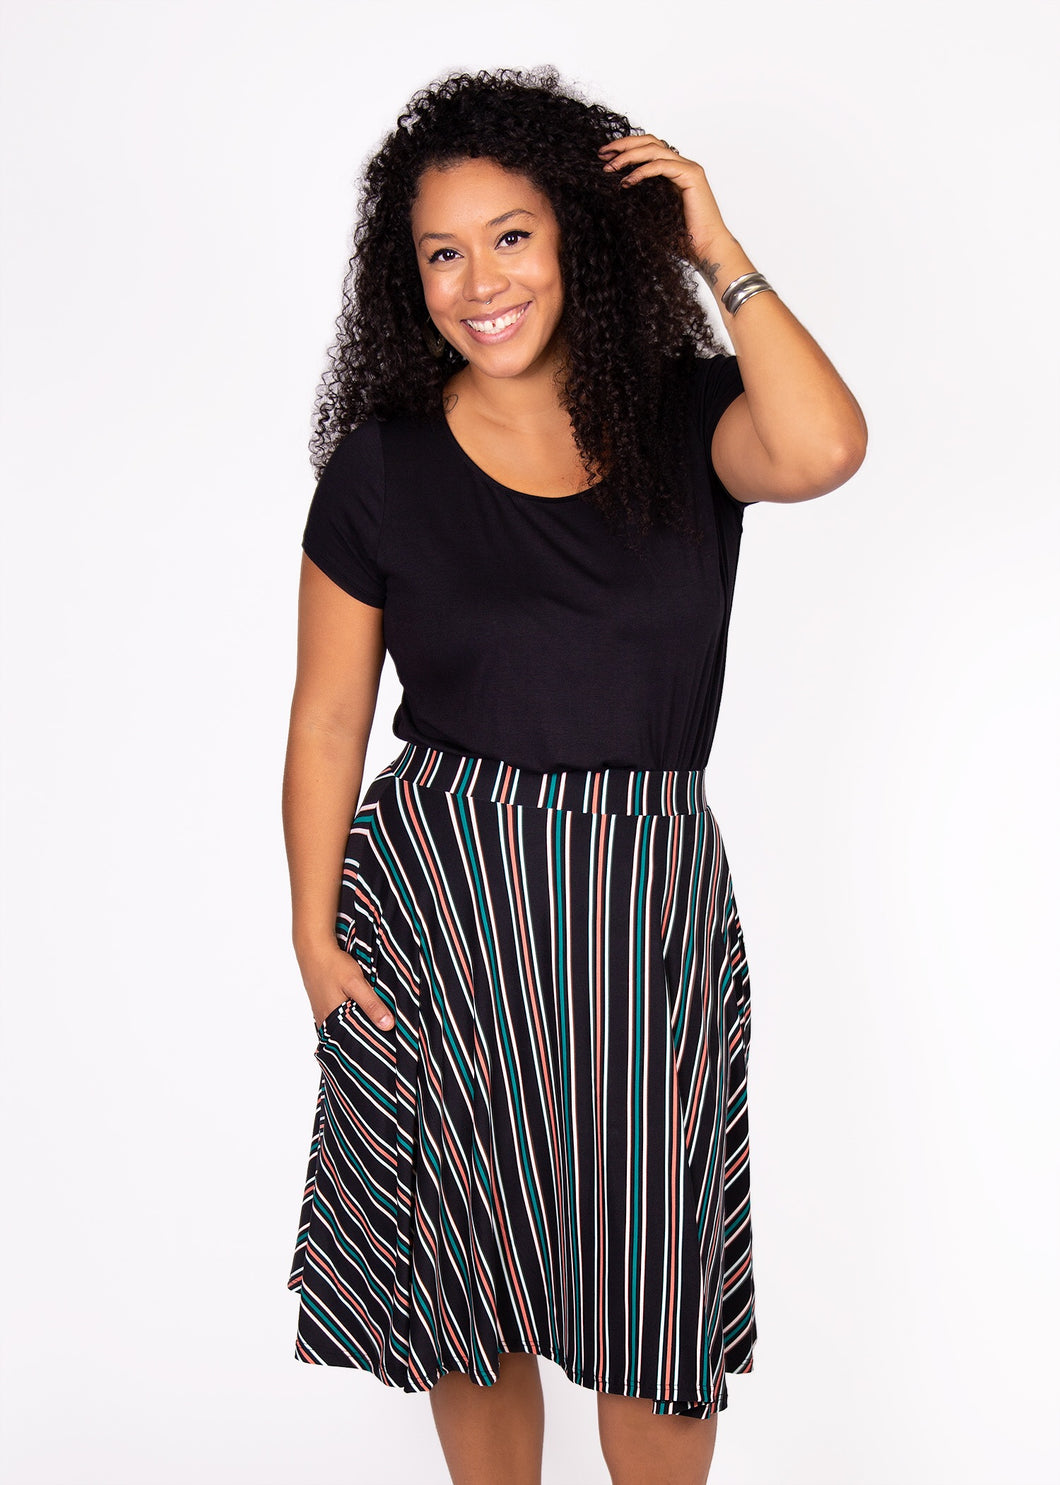 Bloom Skirt - Stripes  - (L)